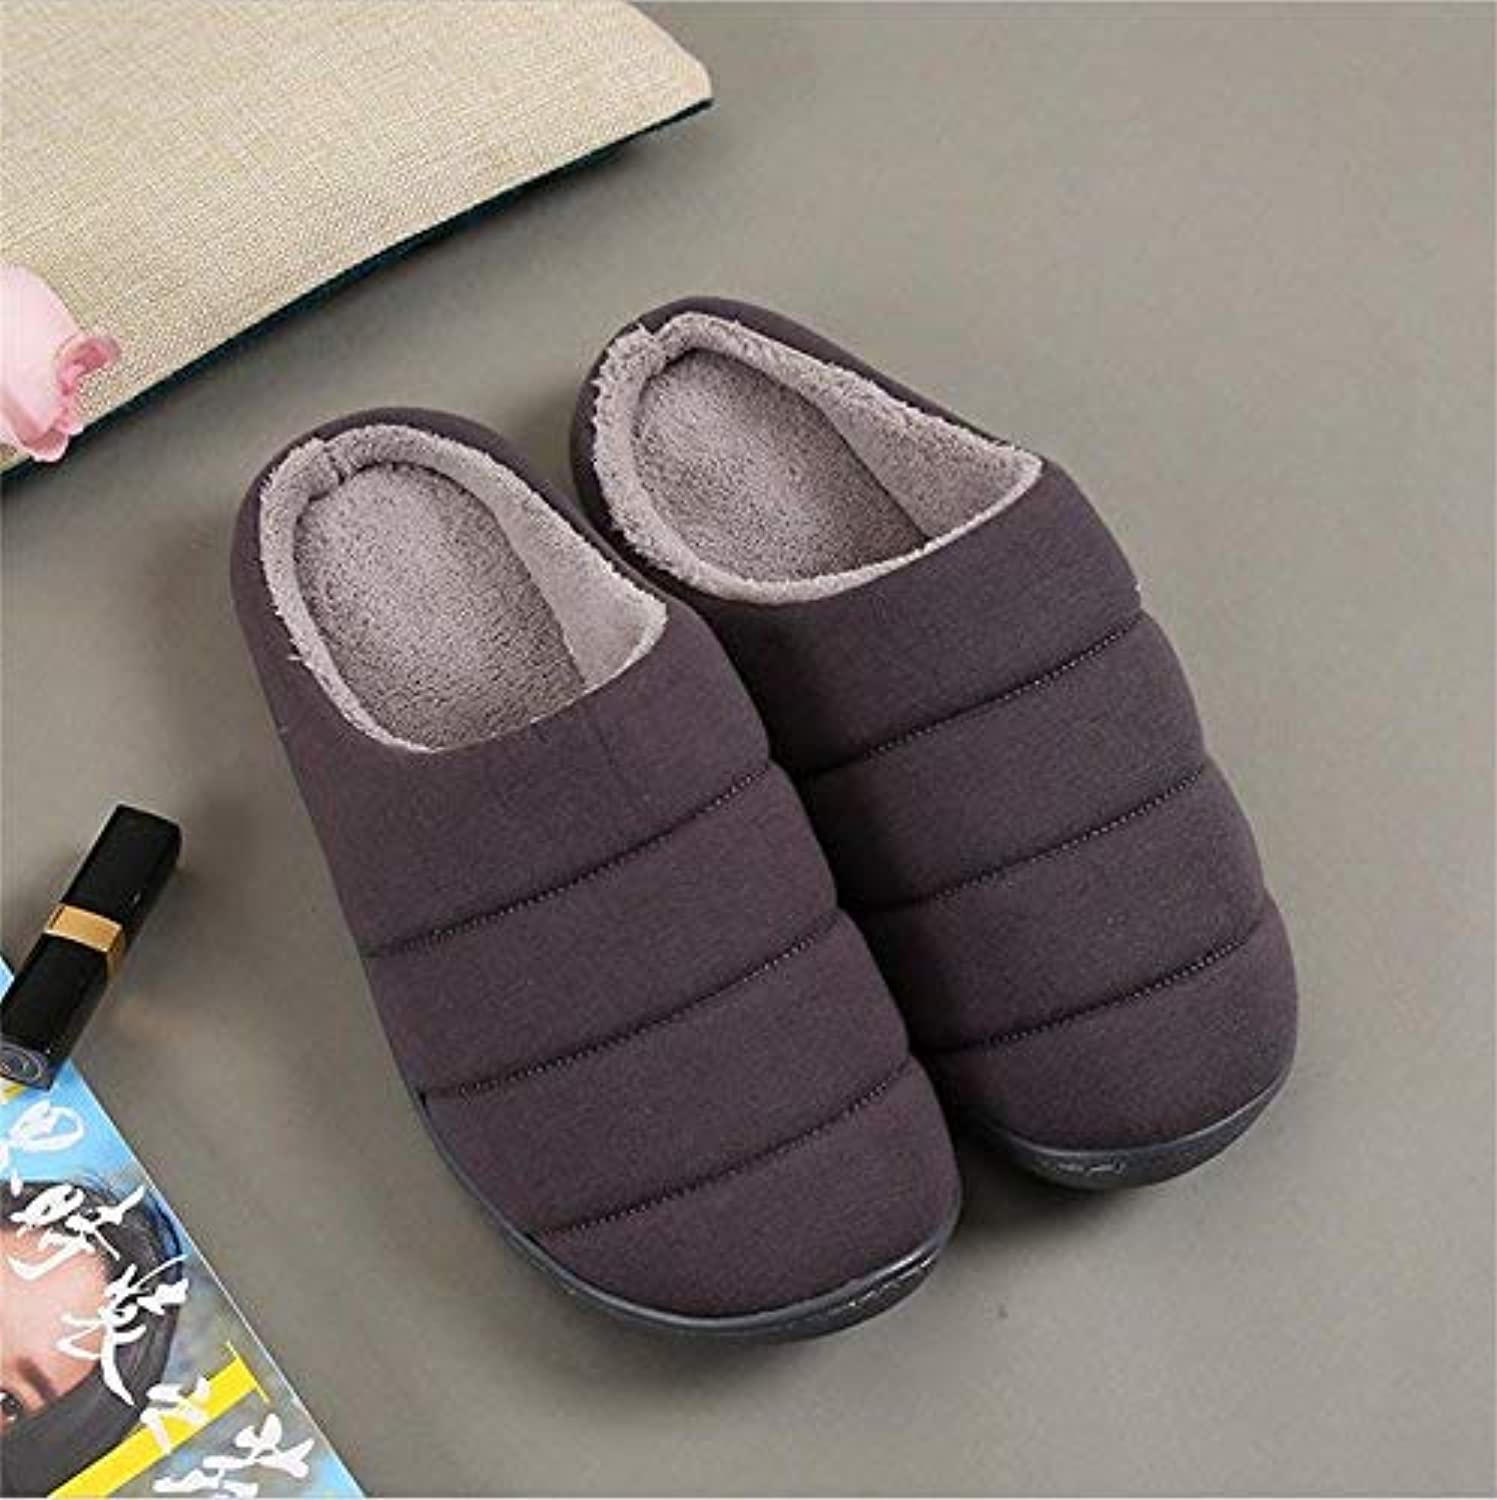 GouuoHi Men Slipper Men's Fall and Winter Home shoes Thick Cotton Slippers Slip Keep Warm Indoor Bedroom Slippers for Men Pink